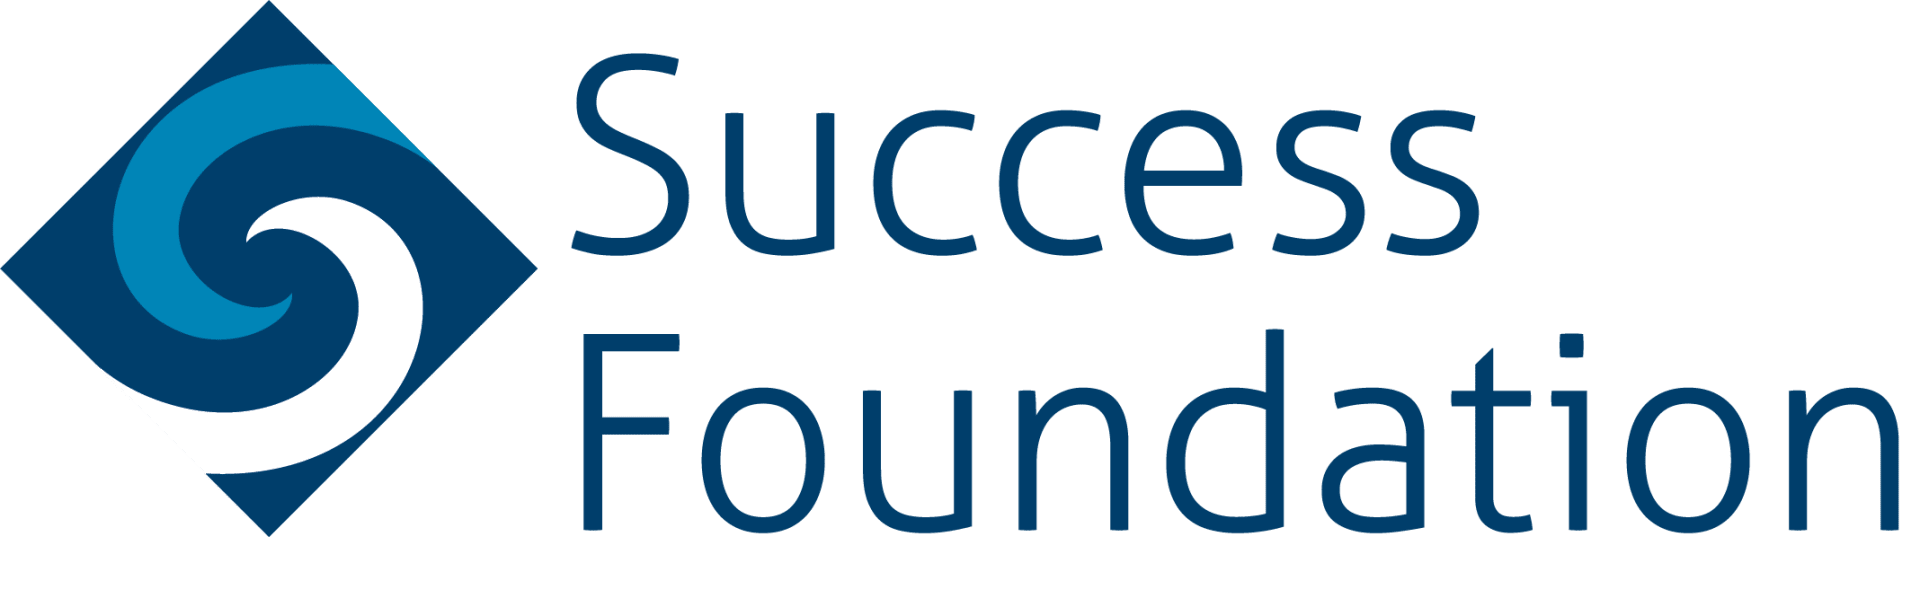 Success-Foundation-w1920.png